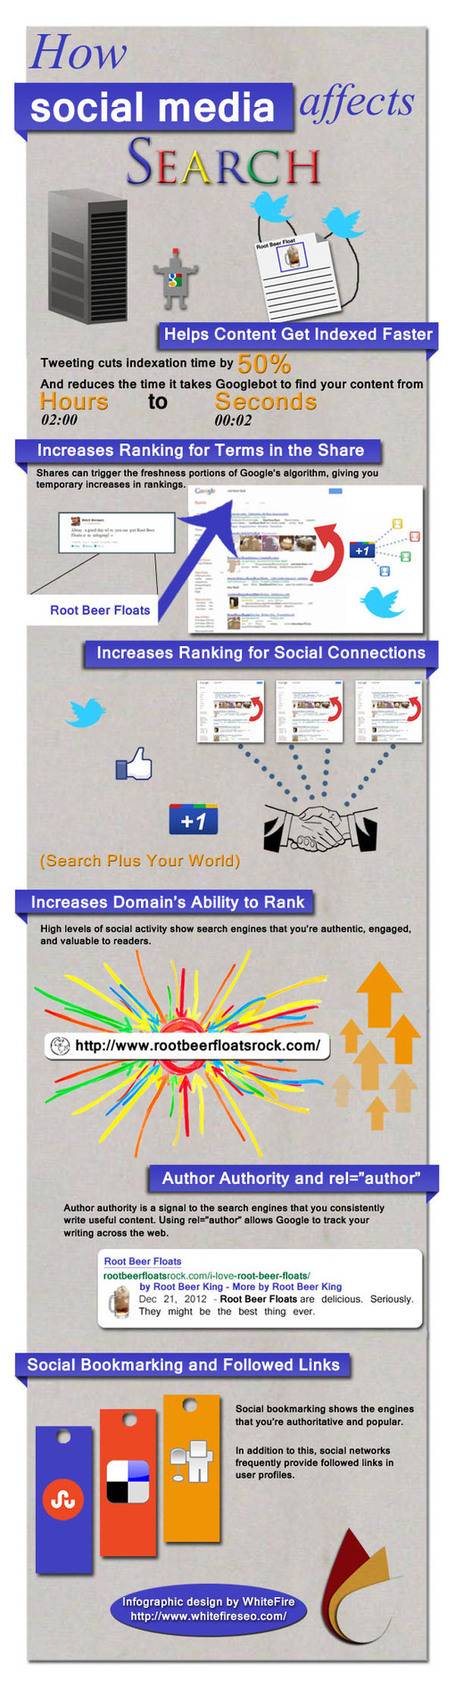 How Social Media Impacts SEO and Site Ranking: infographic | Infographics and Social Media | Scoop.it